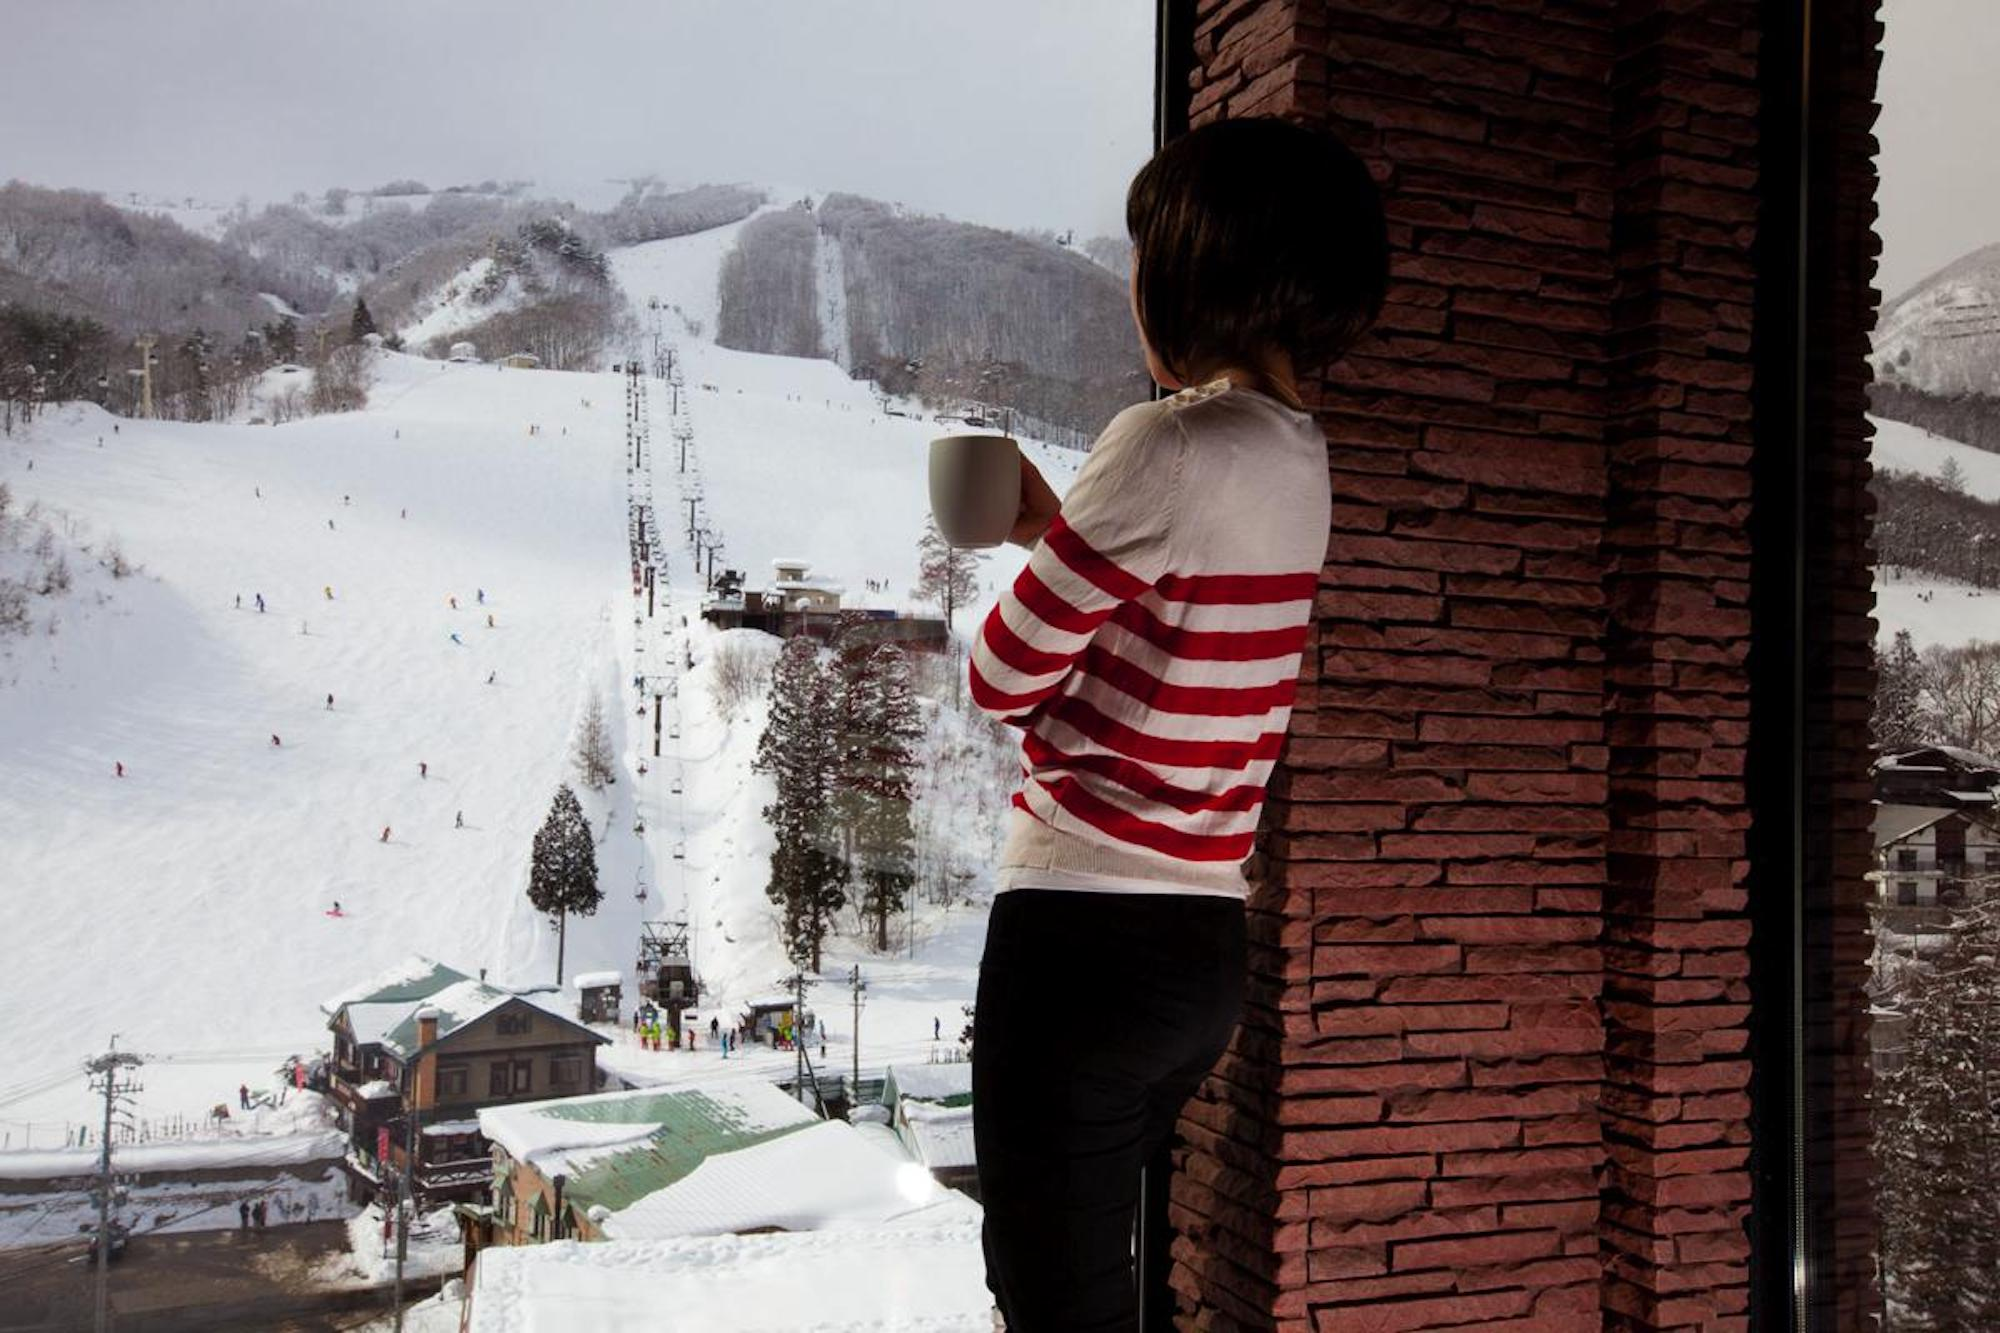 The Most Jaw-Dropping Chalets in Hakuba